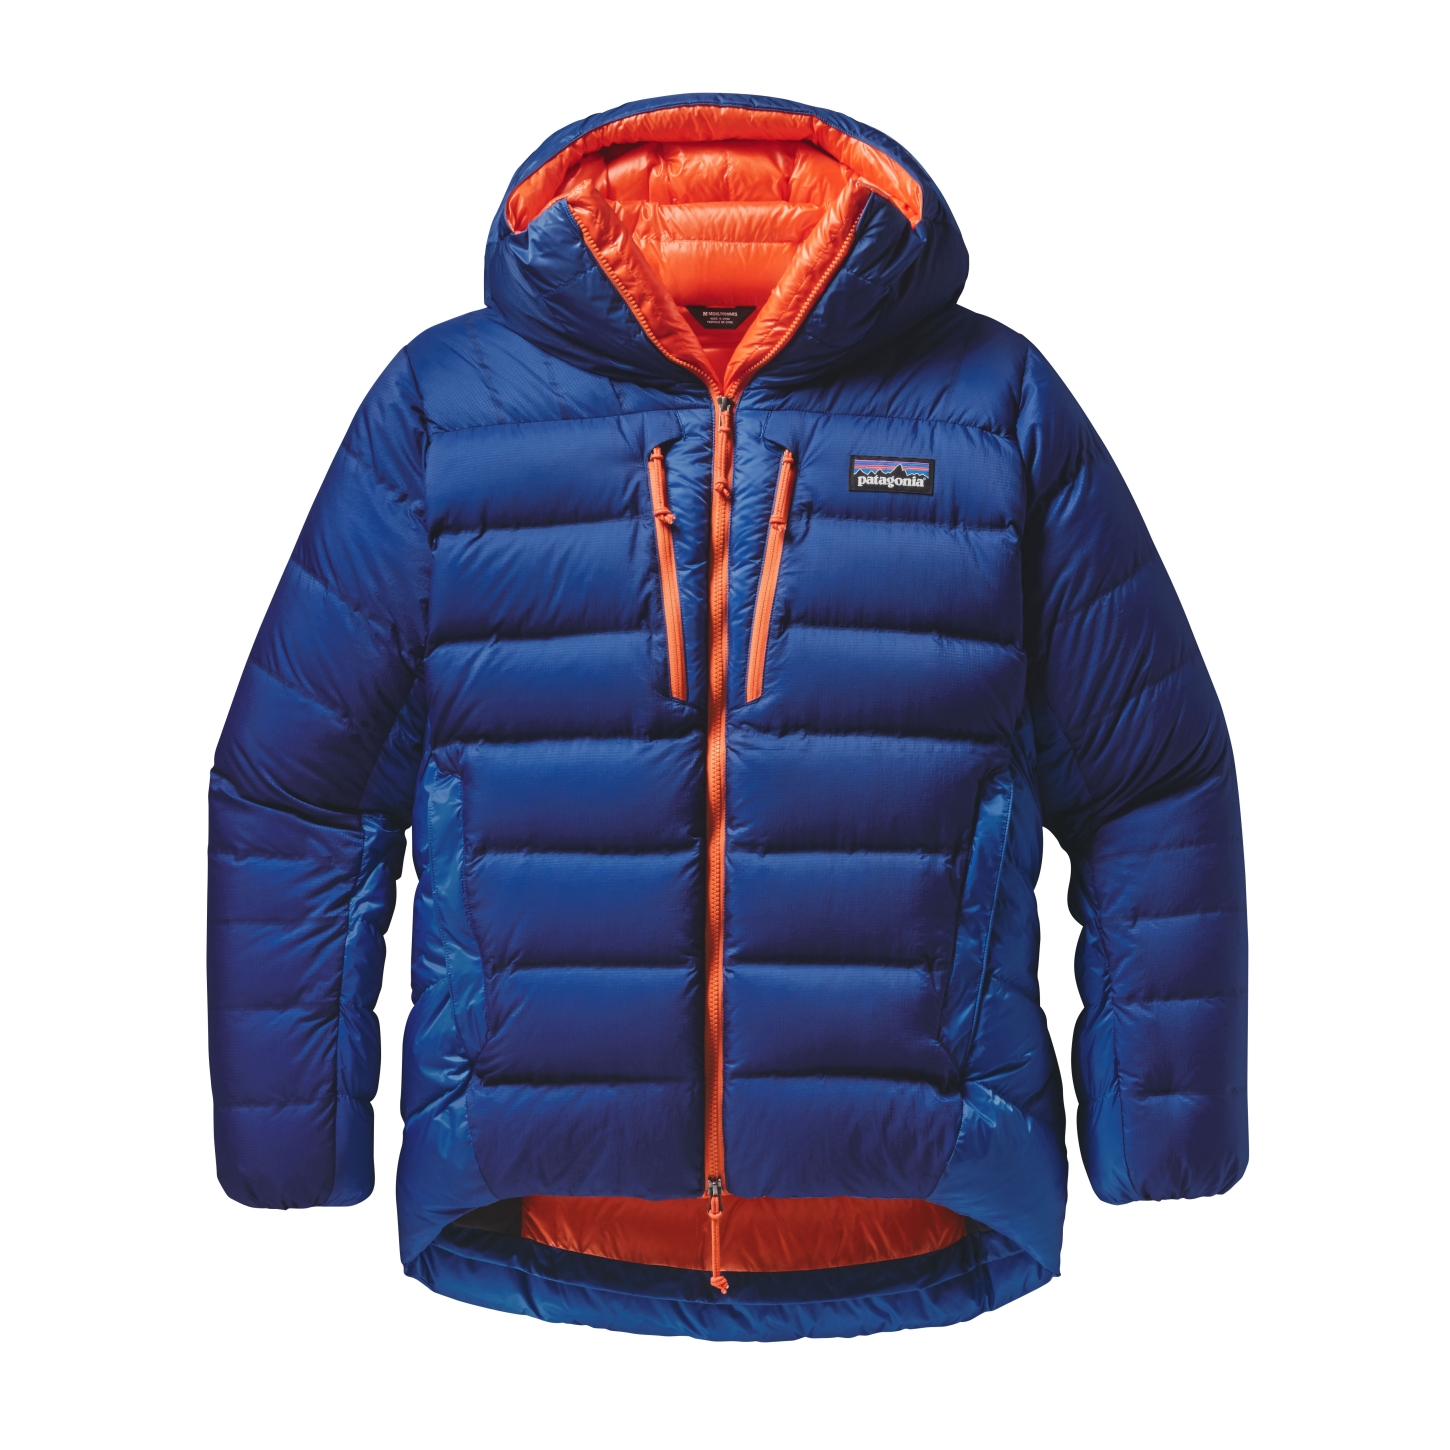 2d2319ee83b Patagonia Grade VII Review: The Best Down Parka Ever | TO THE MAX